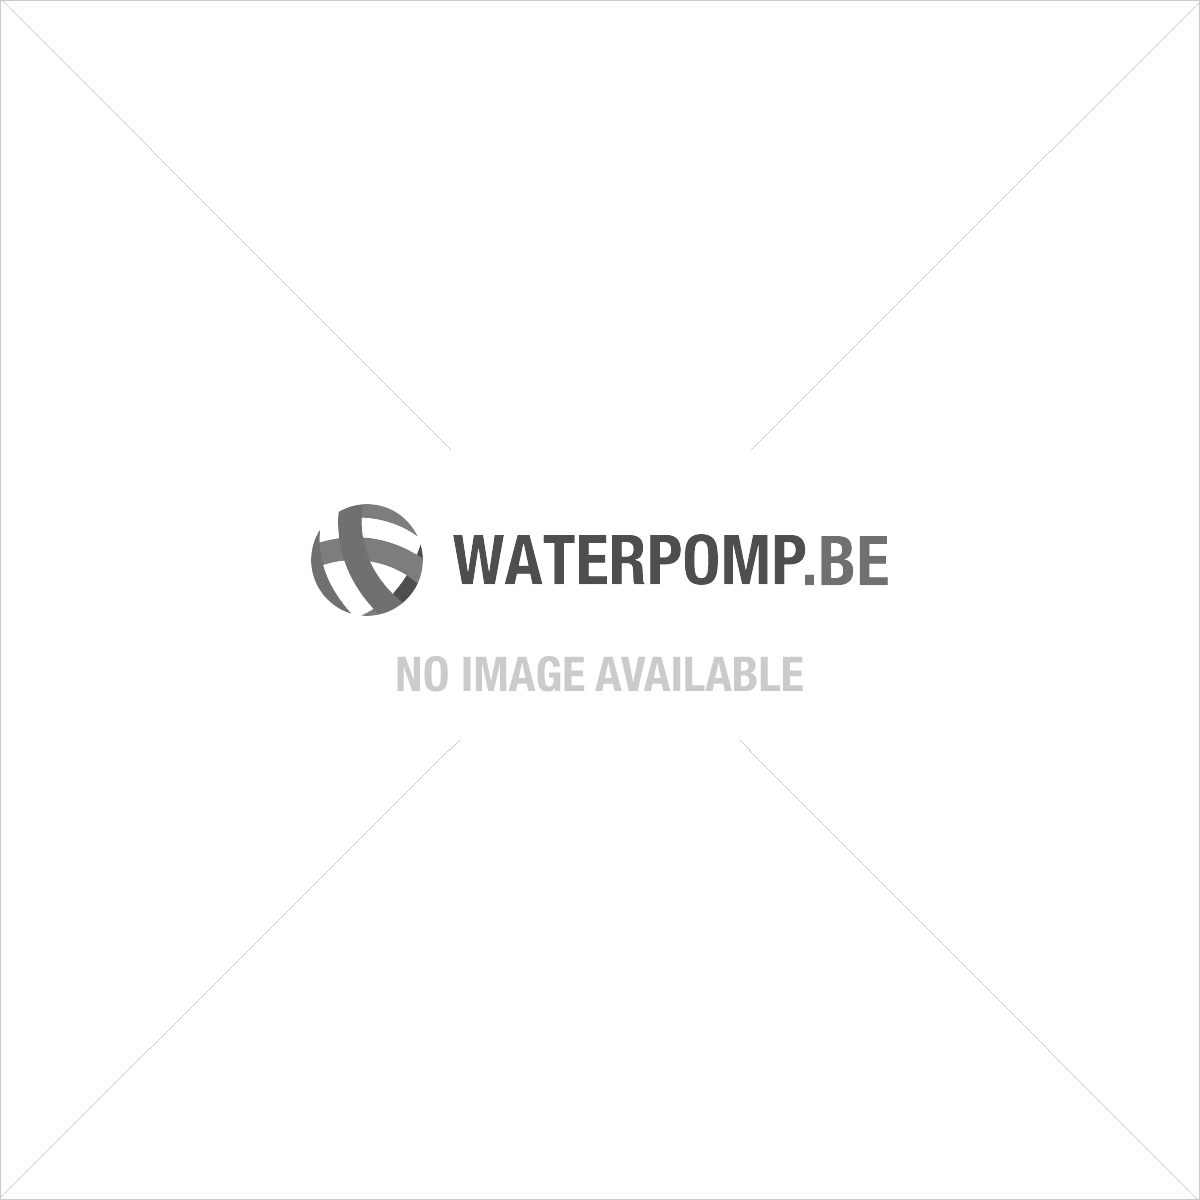 hww 2800 liter per uur hydrofoorpomp waterpomp. Black Bedroom Furniture Sets. Home Design Ideas